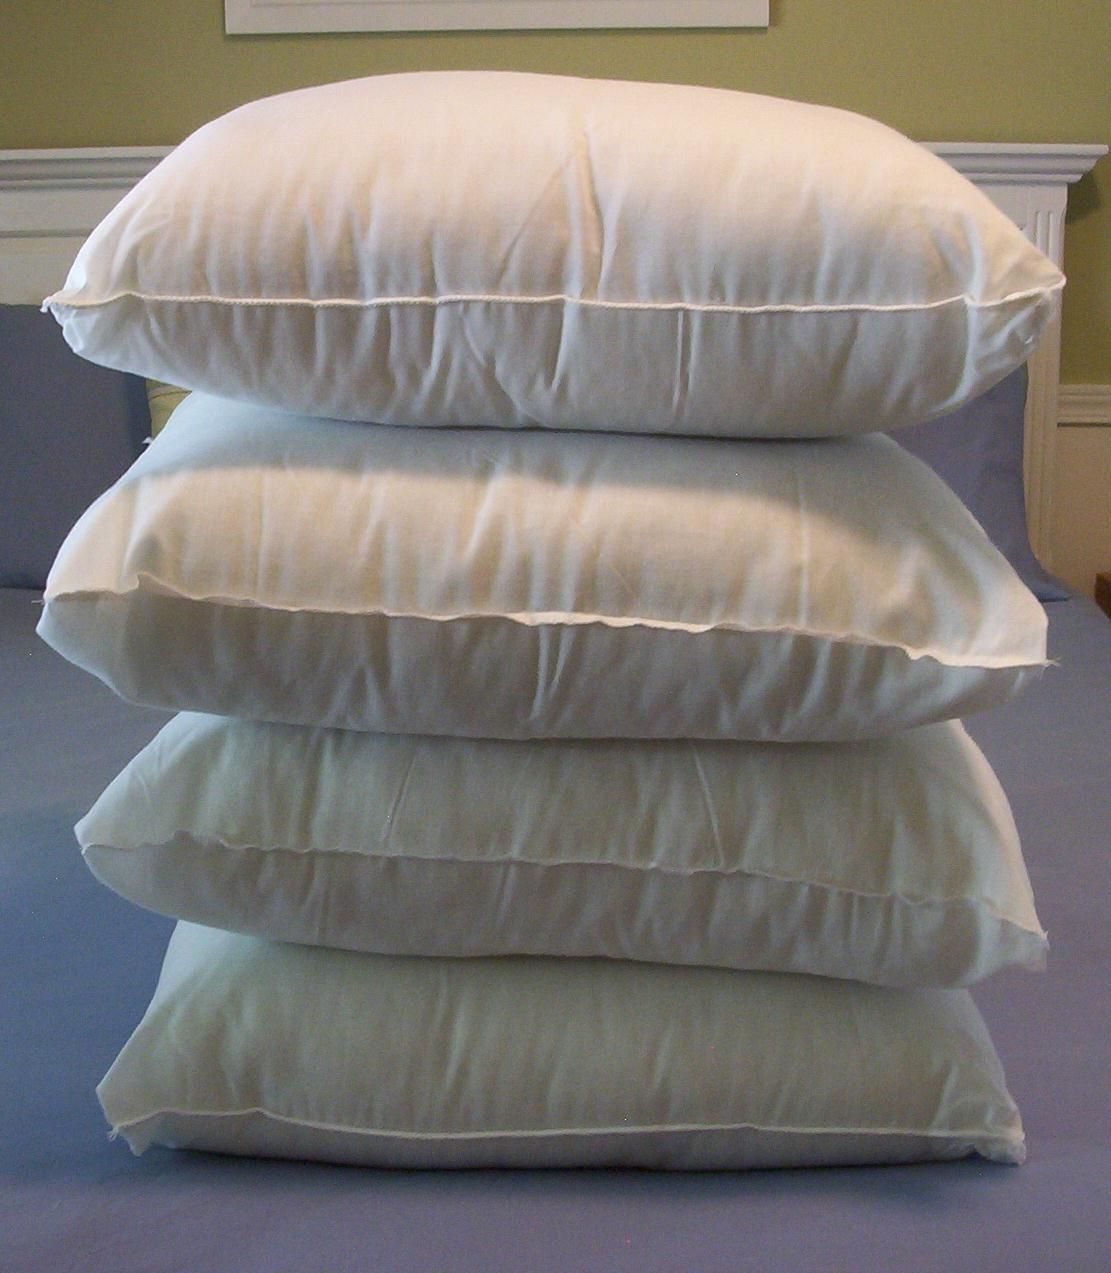 Decorative Pillow Forms : This Thrifty House: Make Your Own Pillow Forms from cheap bed pillows. Just some cutting and ...